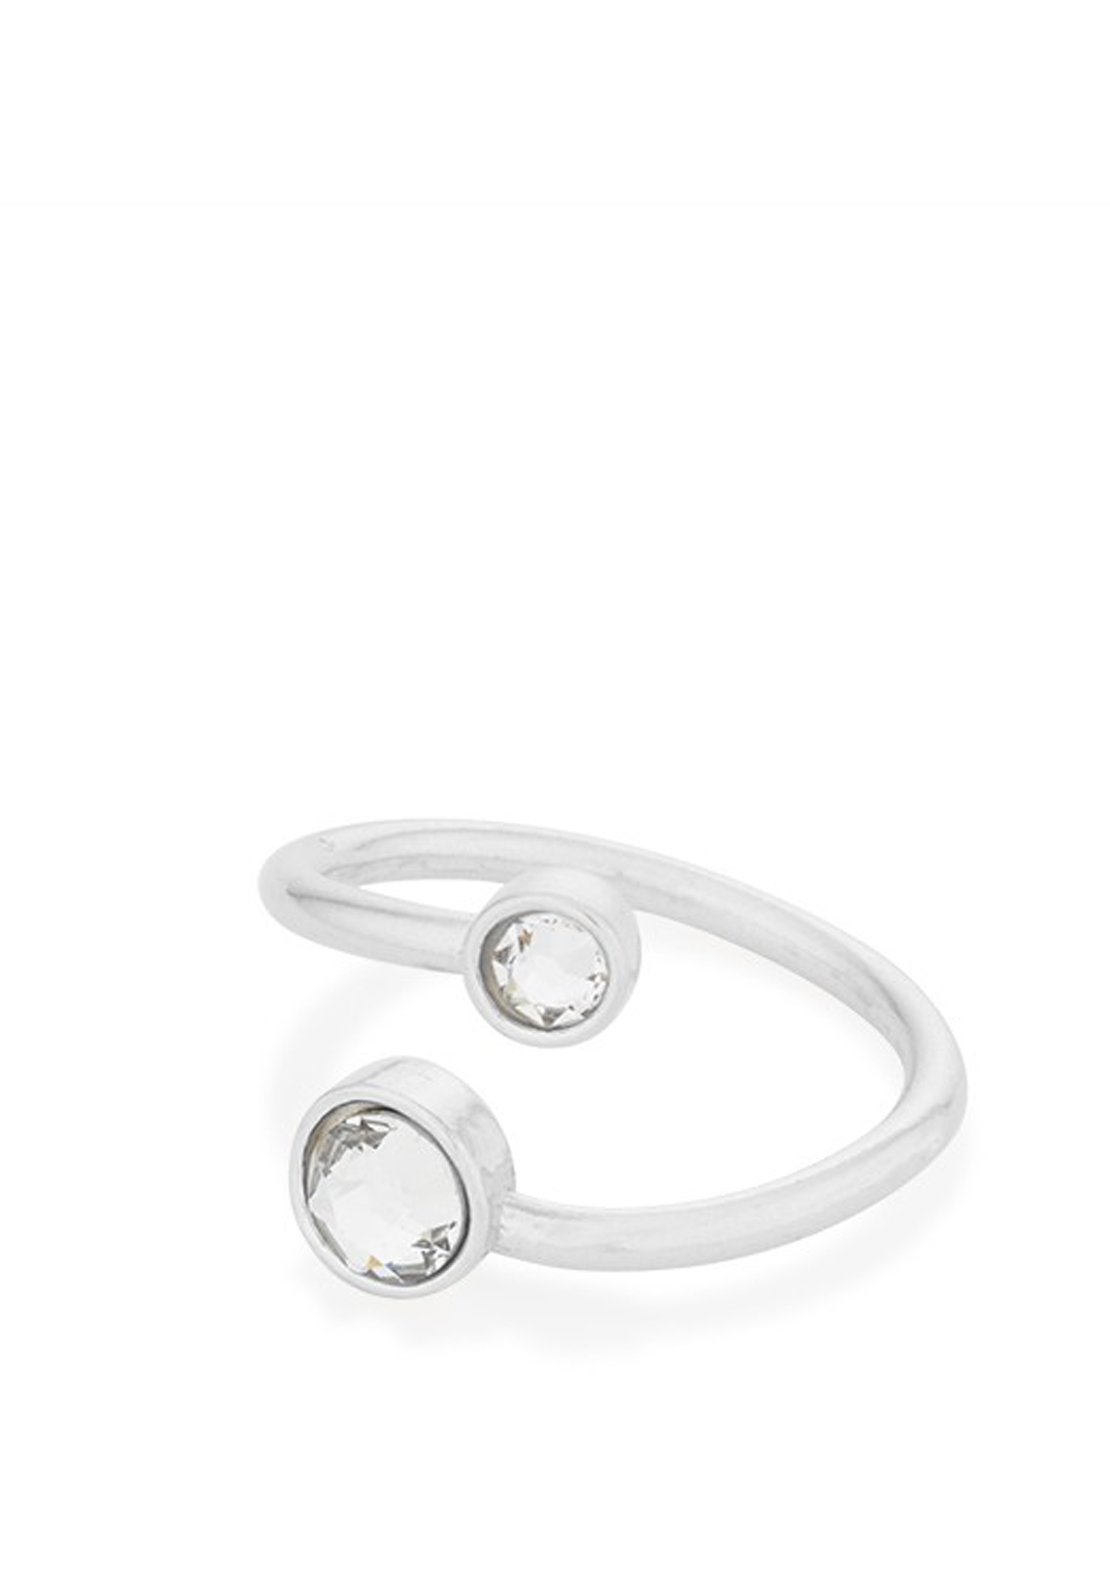 Alex and Ani Swarovski Wrap April Ring, Silver